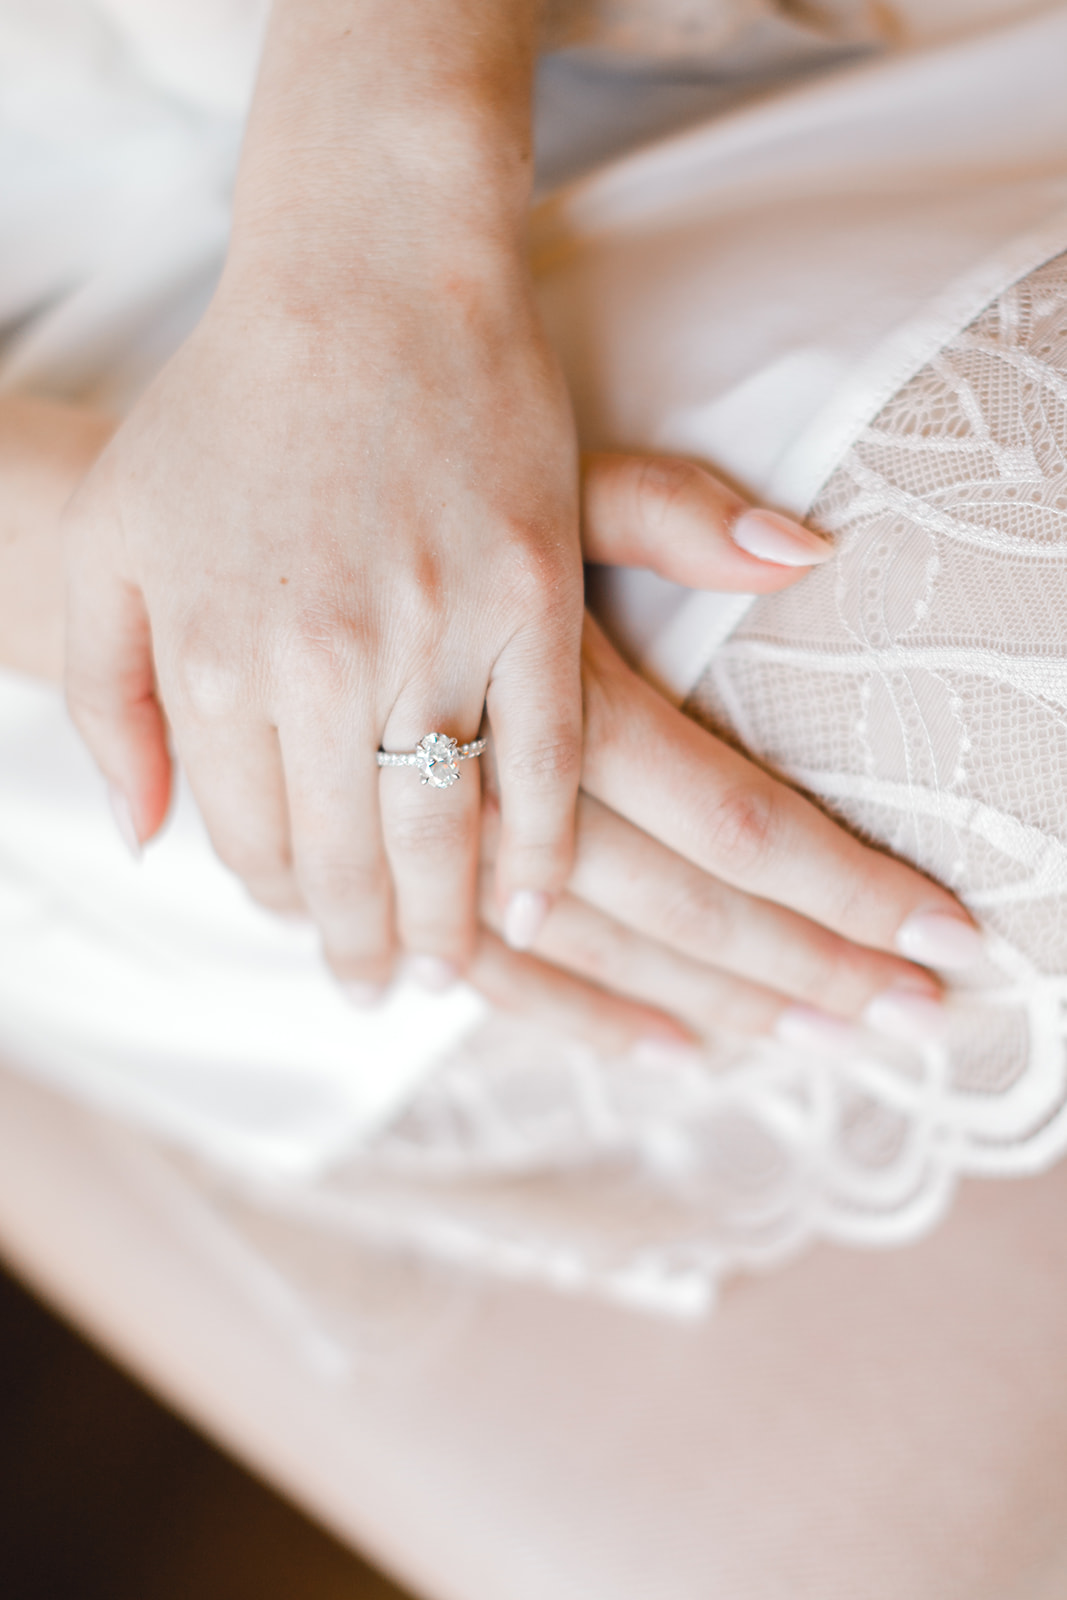 Engagement ring: Timeless Wedding at The Olana featured on Alexa Kay Events!